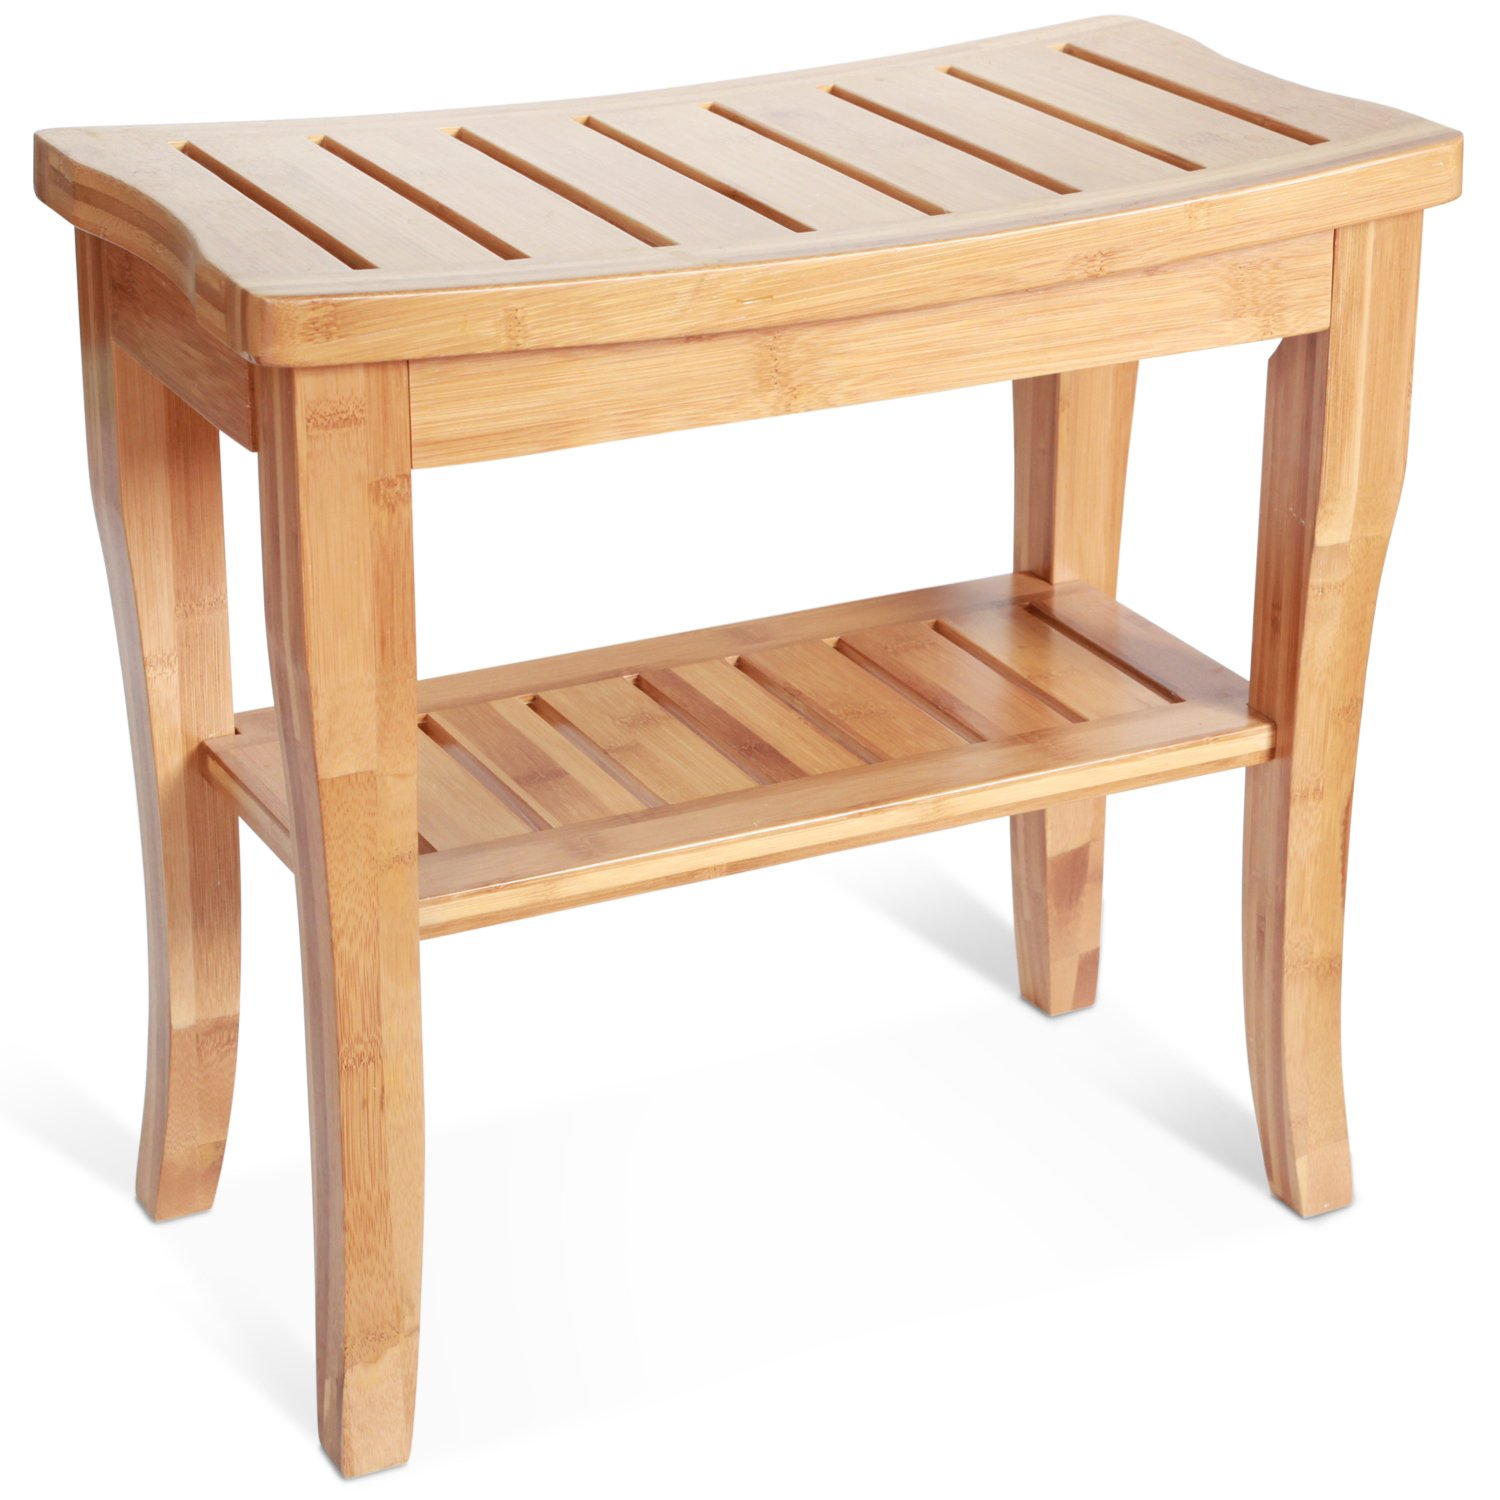 Amazon Deluxe Bamboo Shower Seat Bench with Storage Shelf